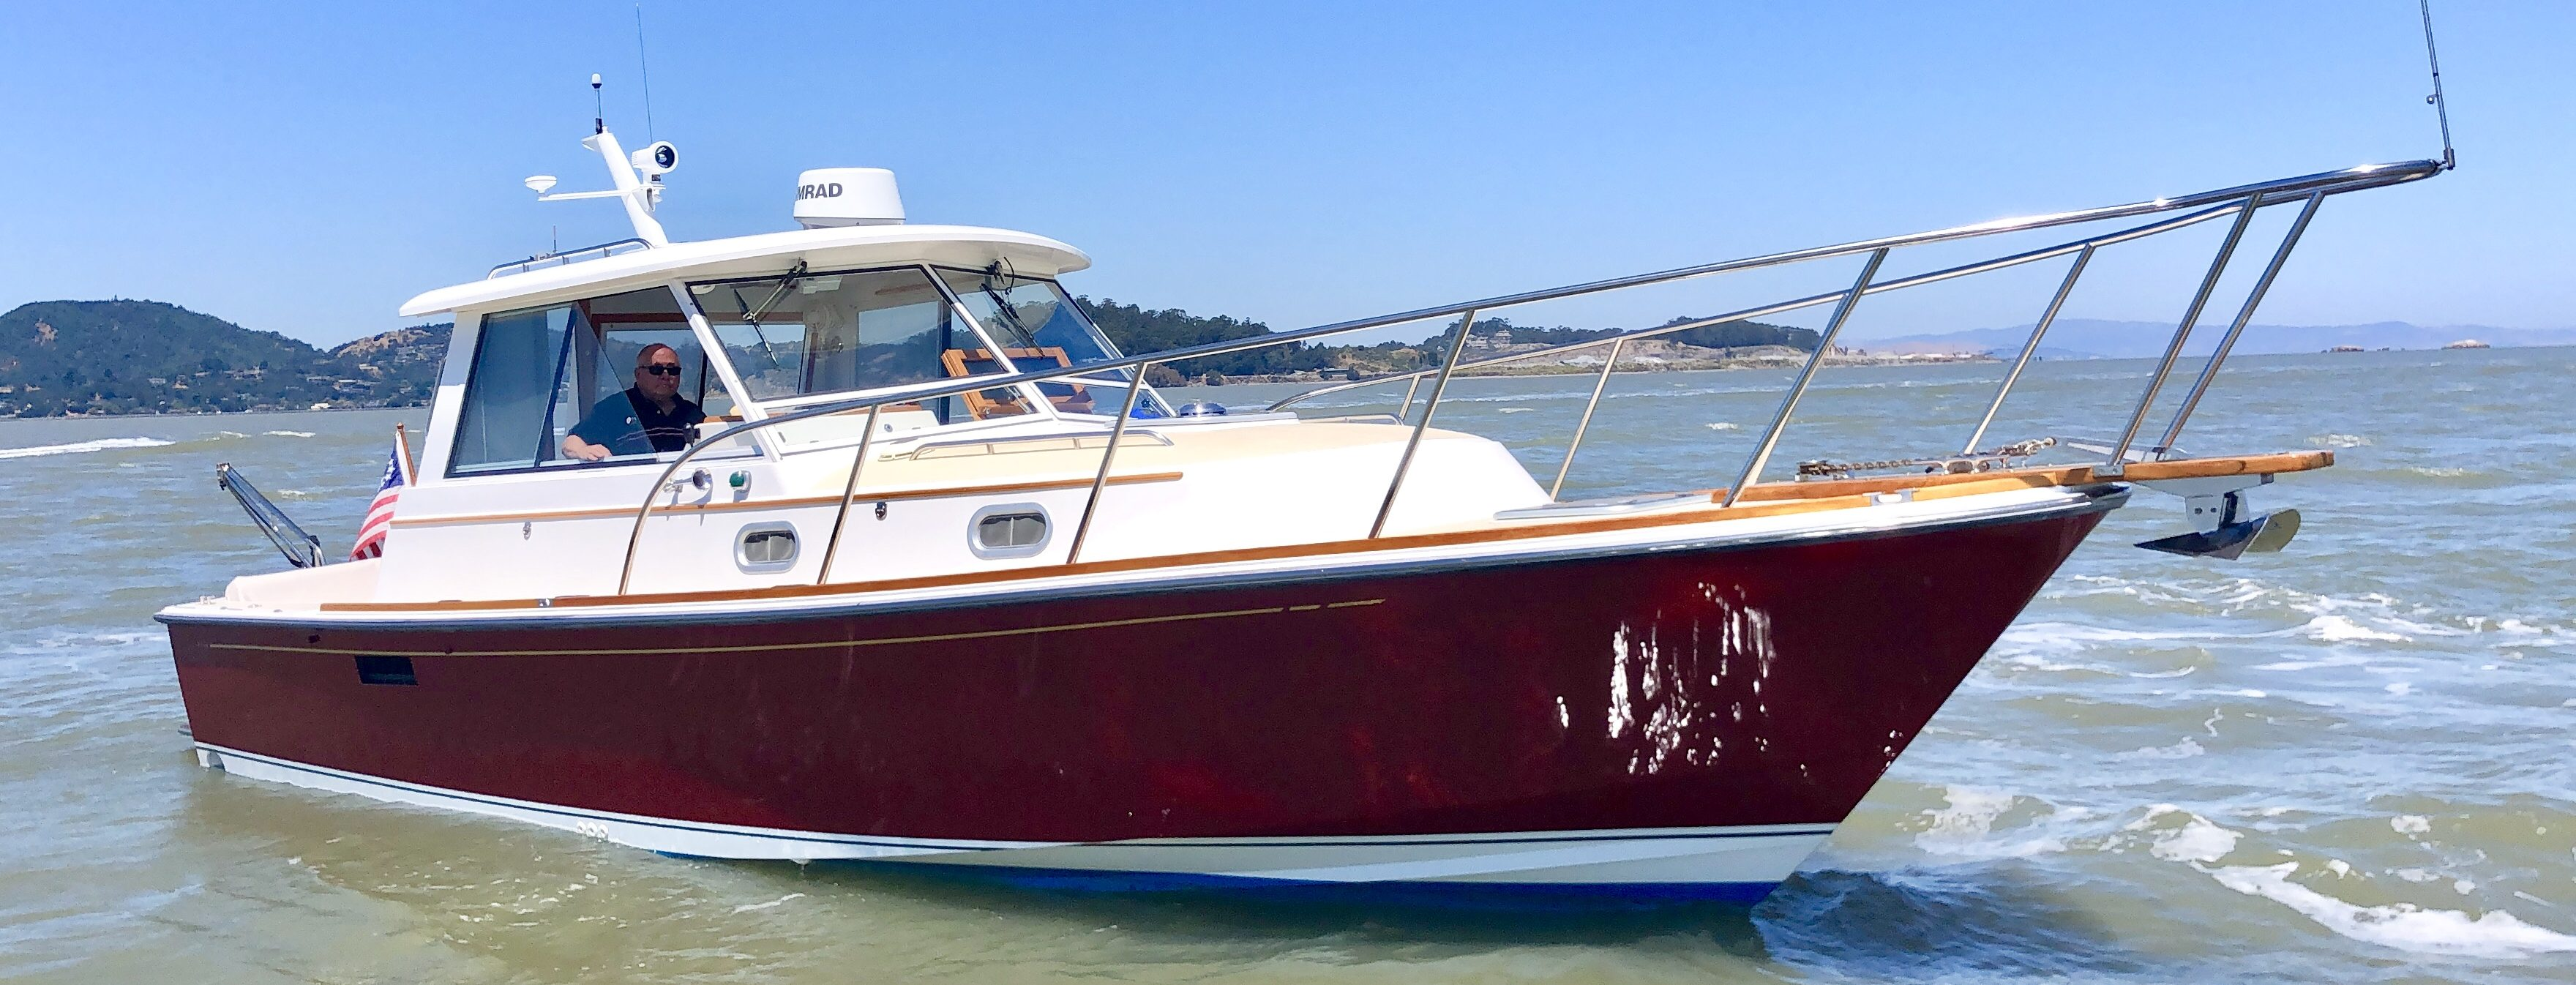 City Yachts | San Francisco's Yacht Brokerage Since 1969